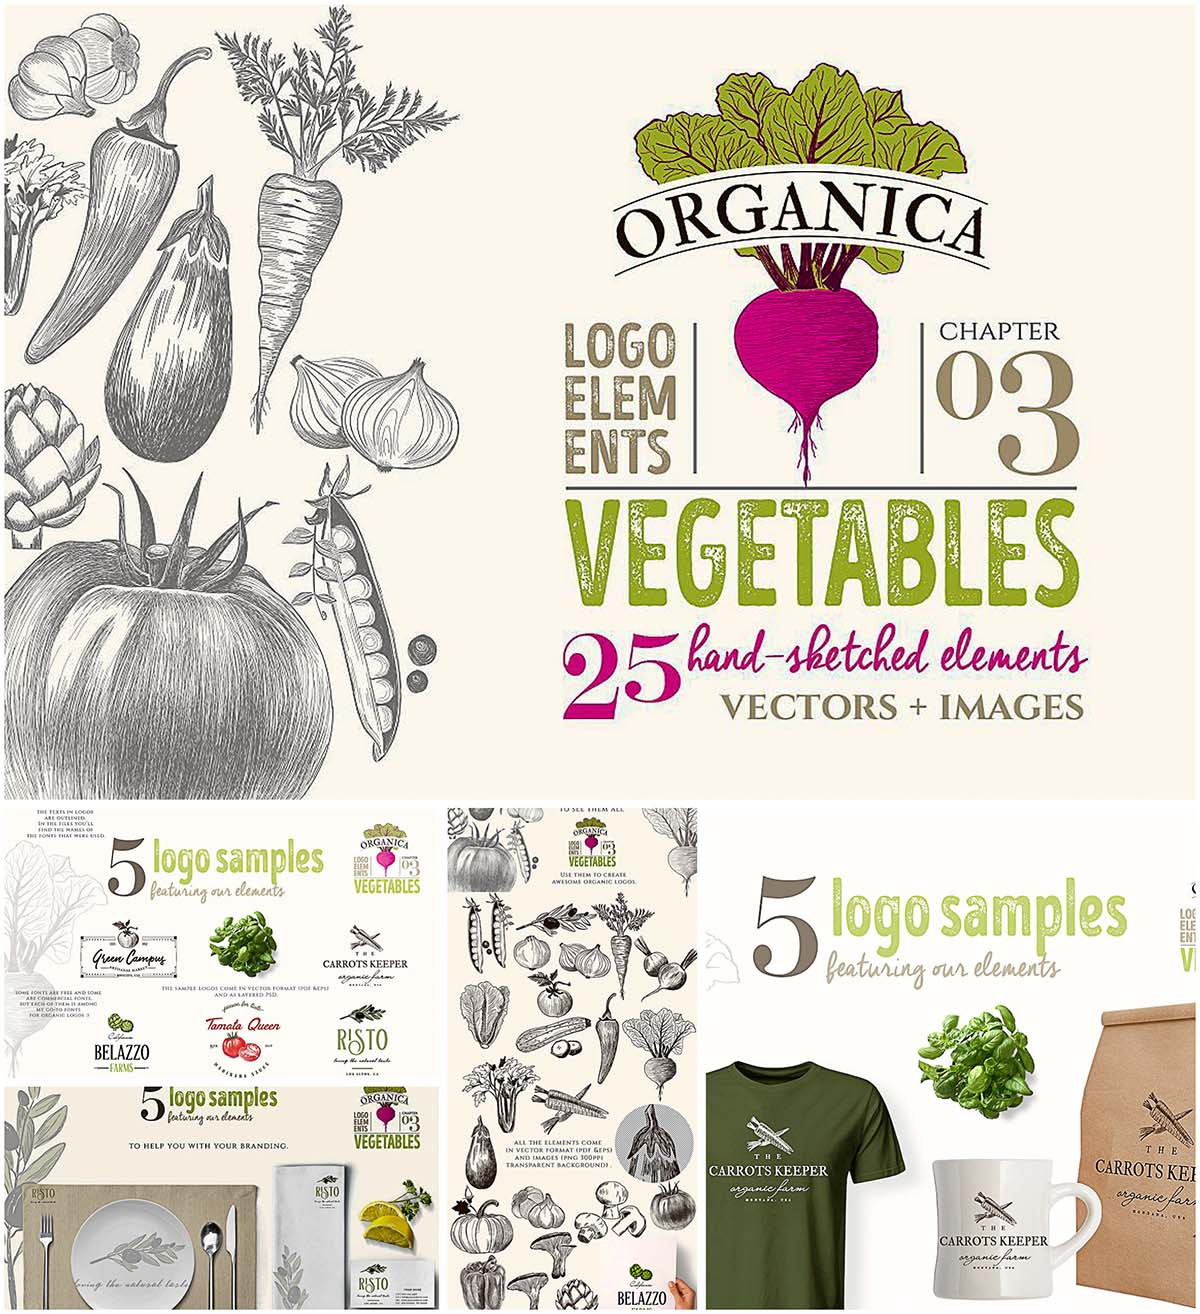 Organic vegetable logo set